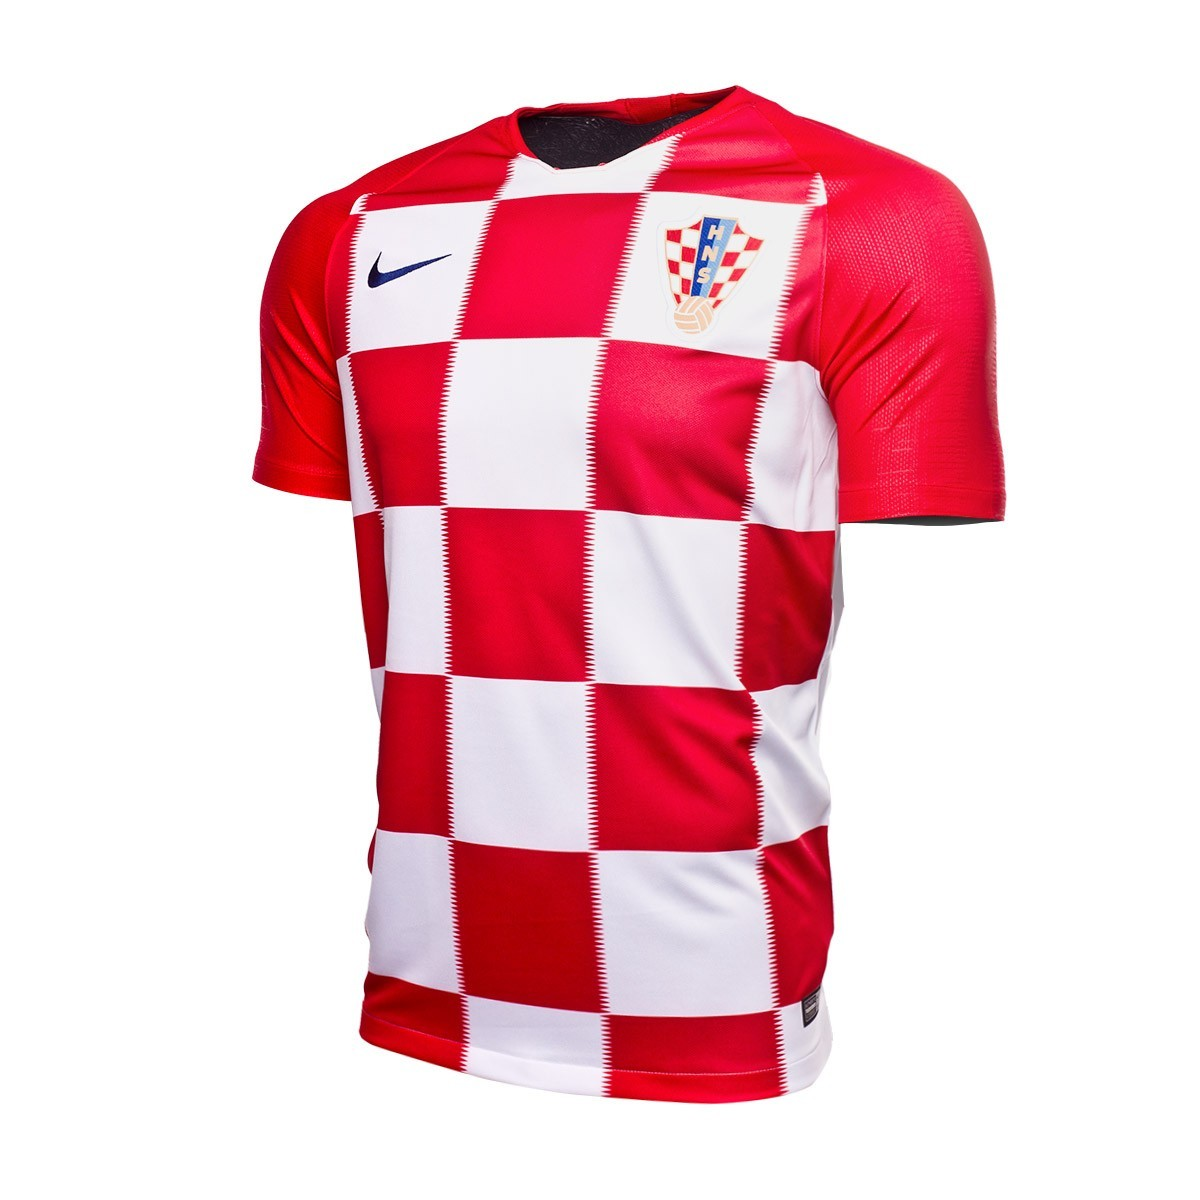 Jersey Nike Kids Croatia Breathe Stadium 2018-2019 Home University ... 2db3eaee51d9c